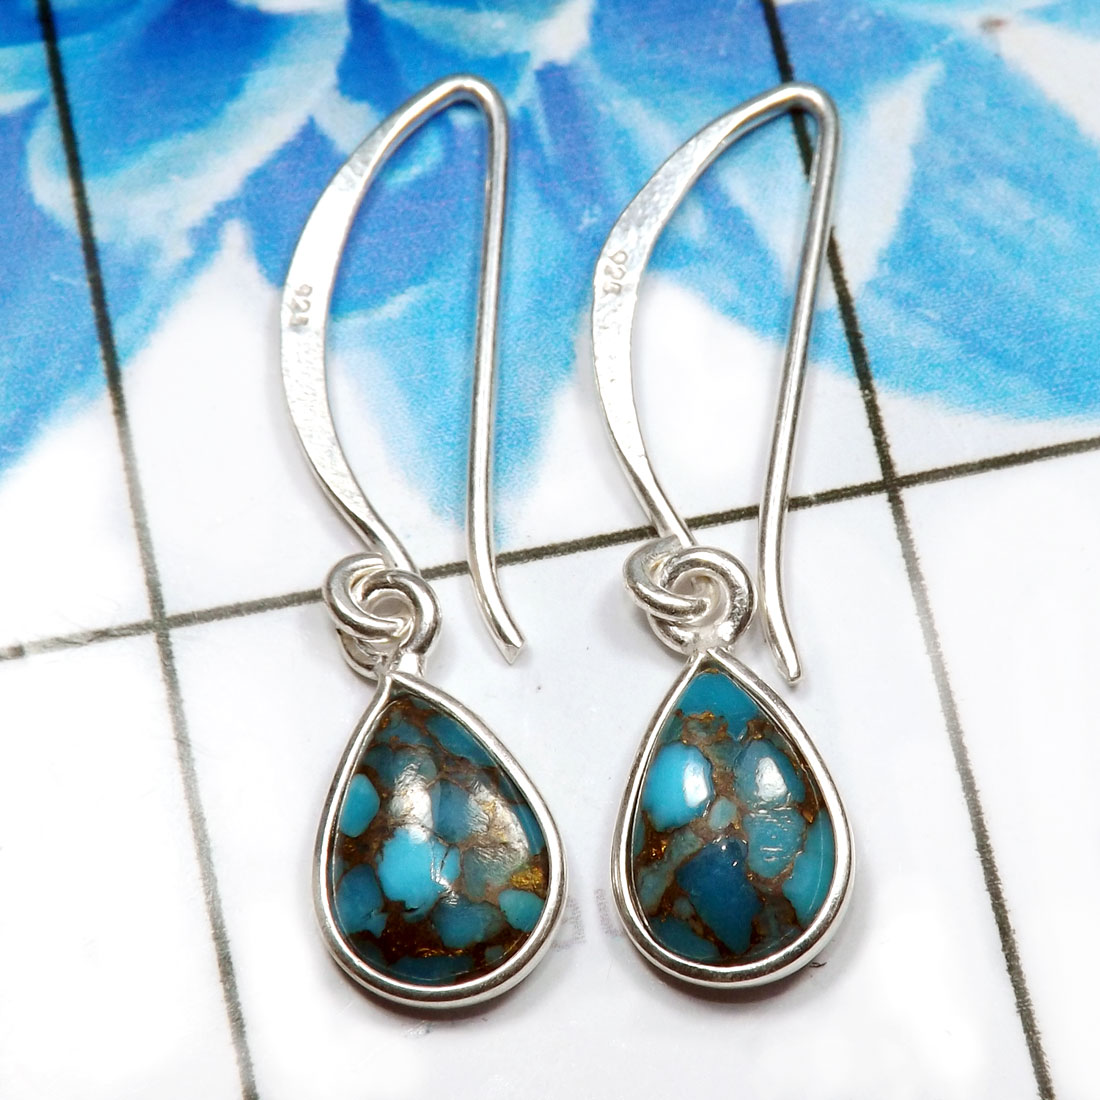 Blue Copper Turquoise J - BZE805-925 Sterling Silver Dazzling Fashionable Bezel Earrings W